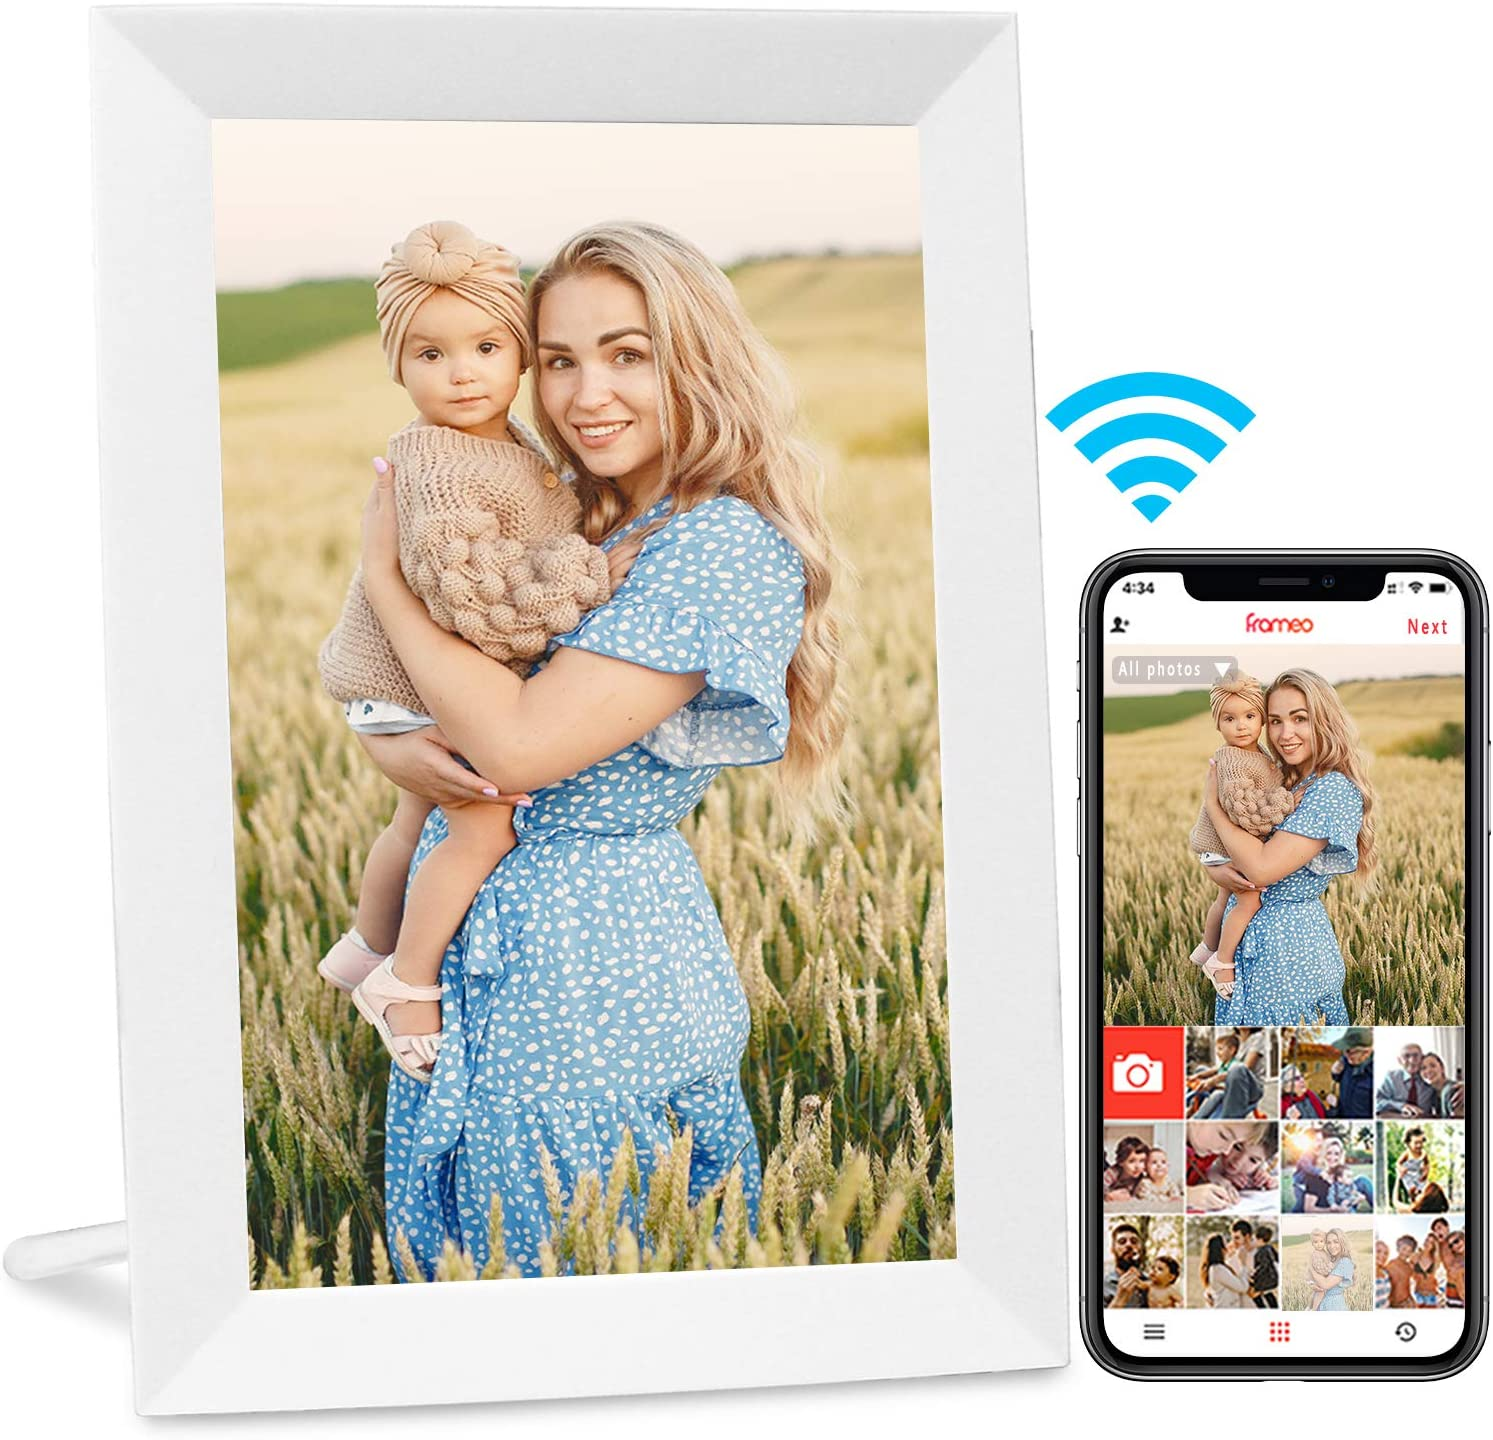 AEEZO WiFi Digital Picture Frame, IPS Touch Screen Smart Cloud Photo Frame with 16GB Storage, Easy Setup to Share Photos or Videos via Free Frameo APP, Auto-Rotate, Wall Mountable (9 inch White)